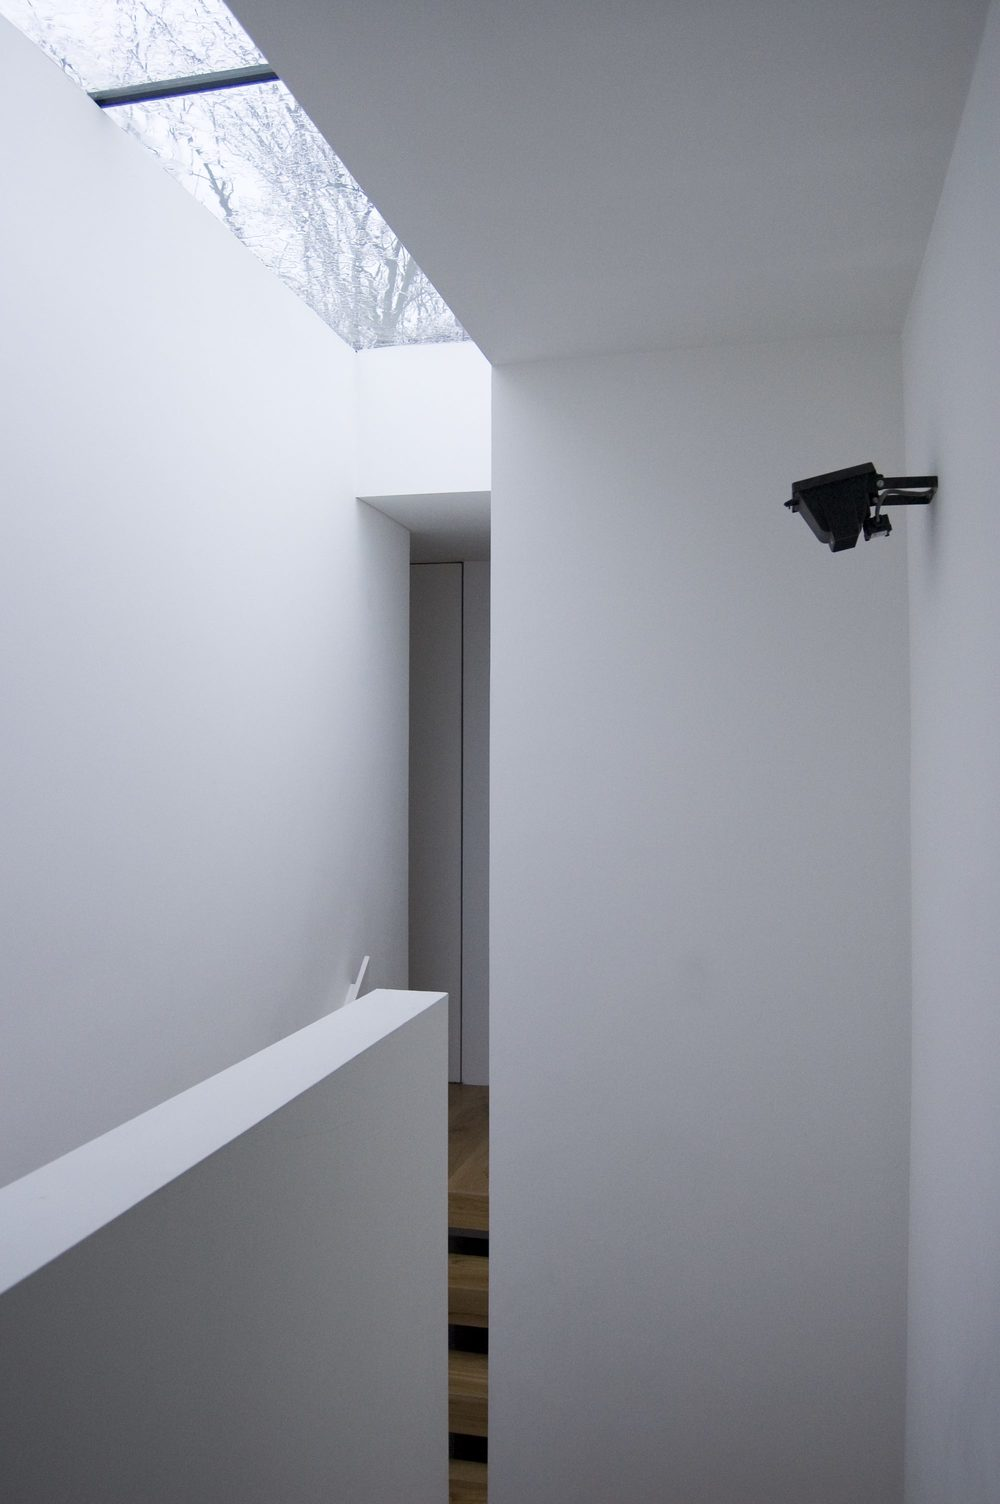 WTAD_staircase and rooflight from landing.jpg